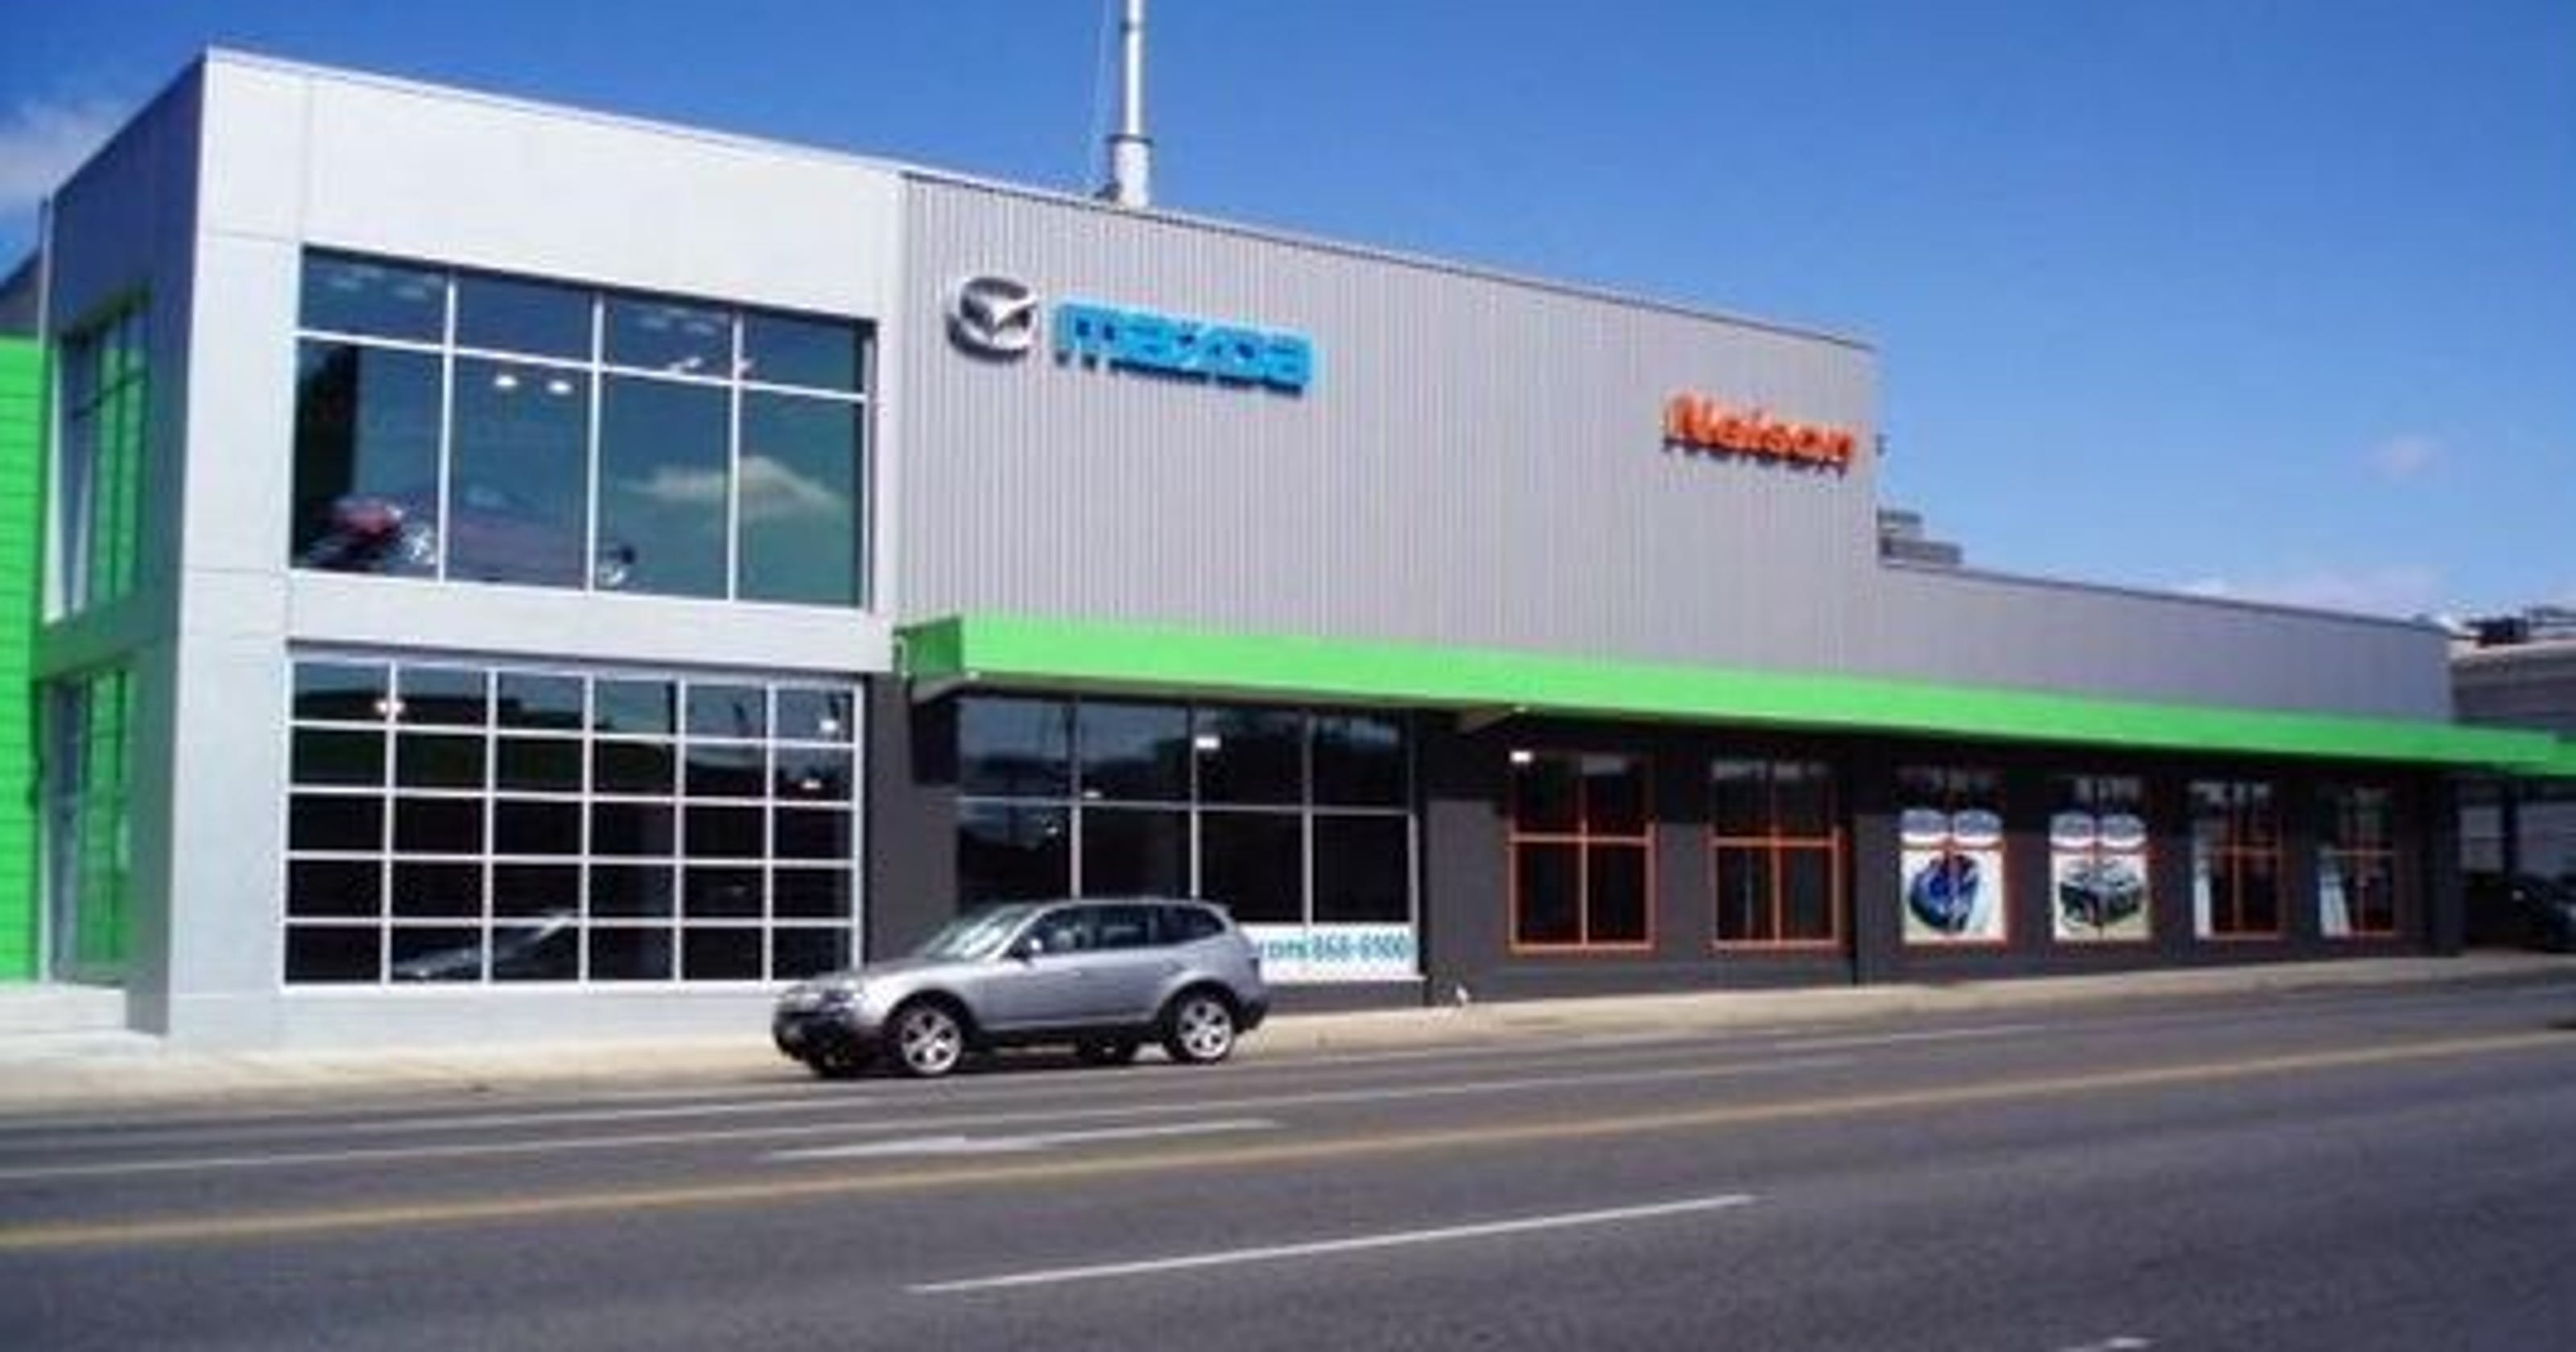 Broadway's Nelson Mazda site sells for $13.4M